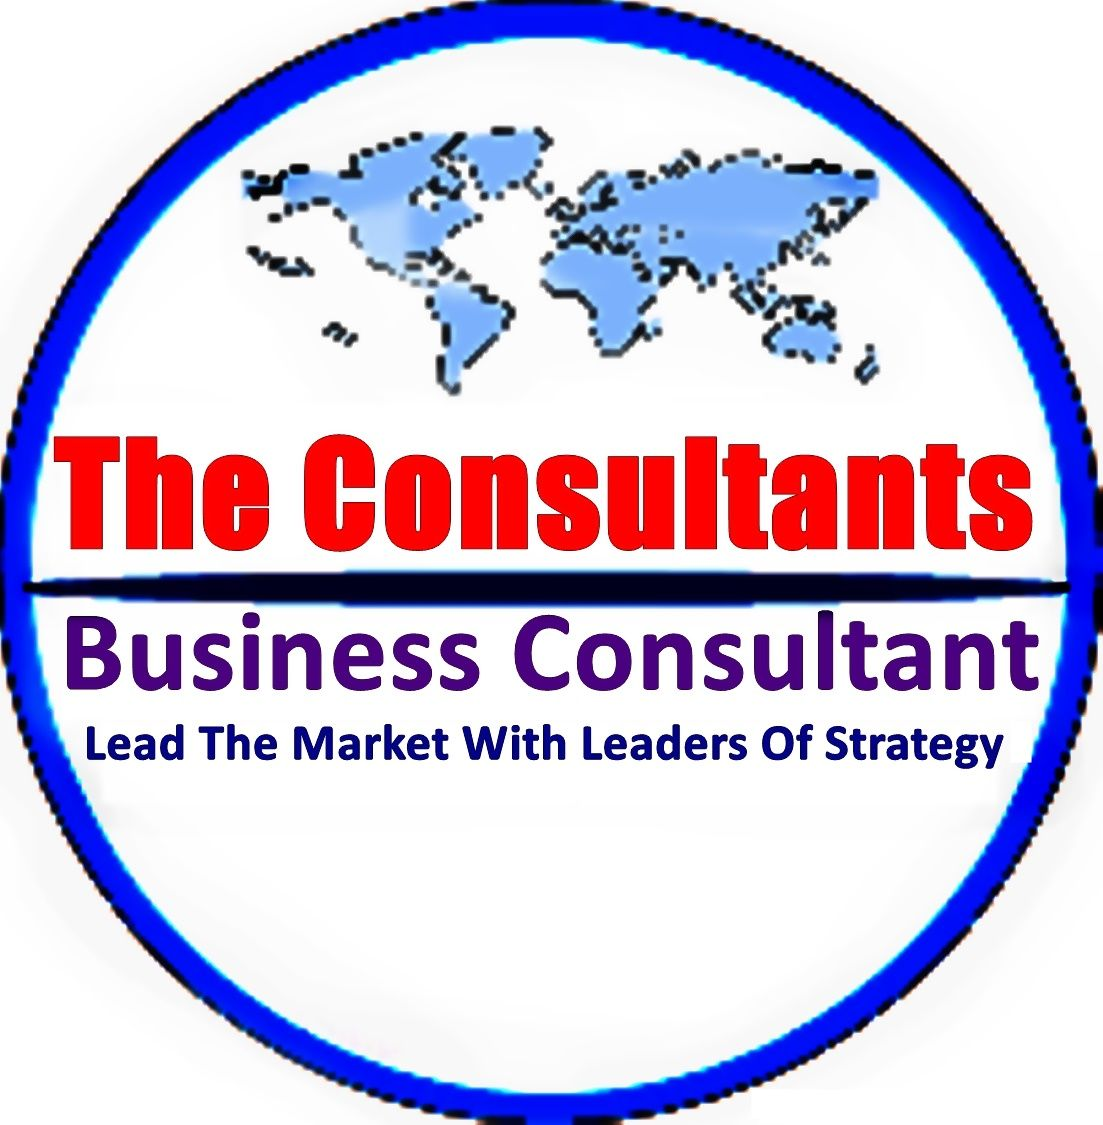 Bend The Market Marketing Consultant Lead The Market With Leaders Of Market Strategy Http The Marketing Consultant Marketing Strategy Consulting Business